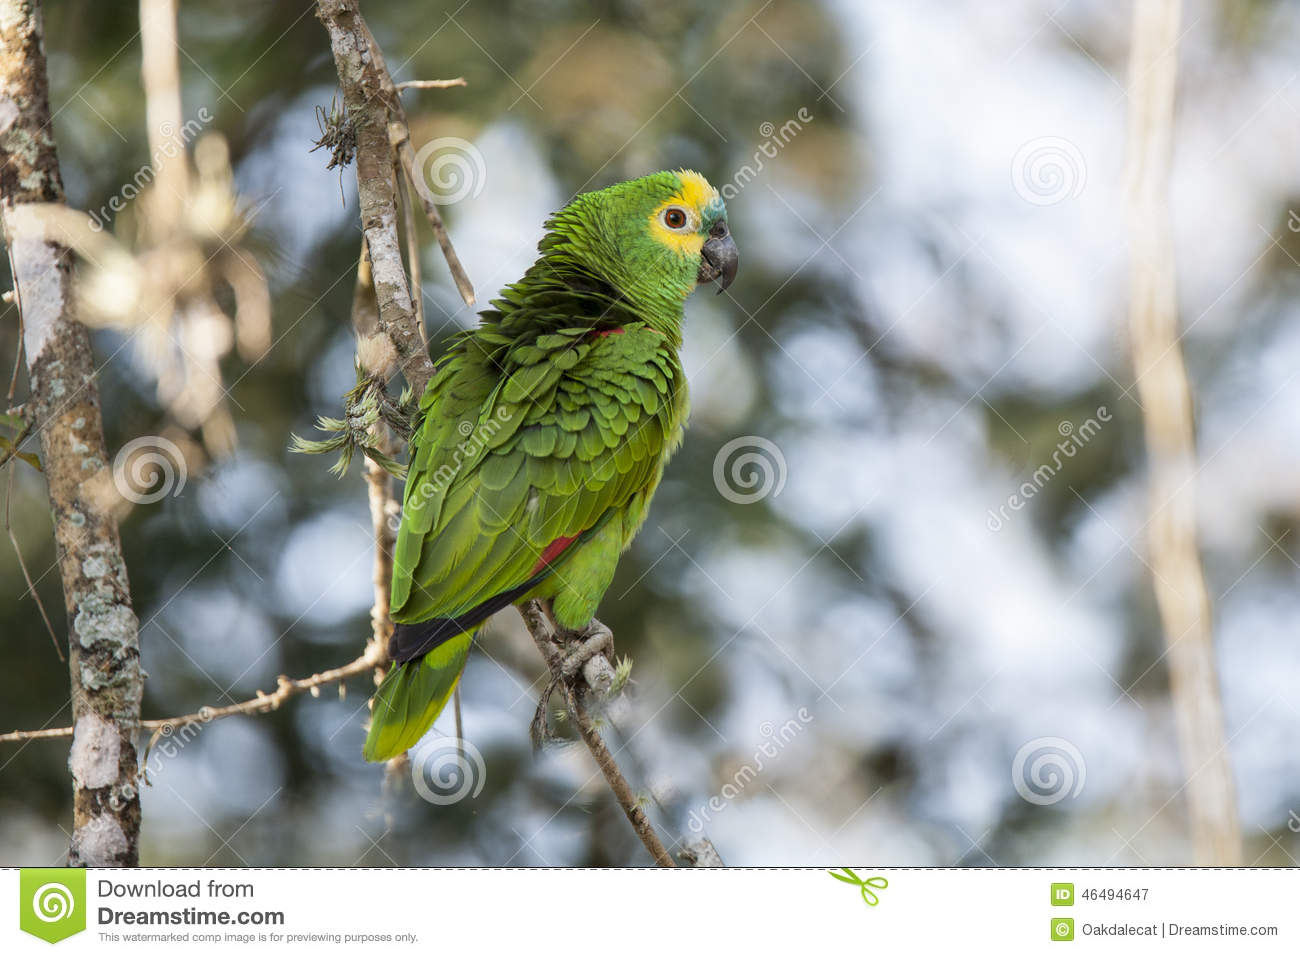 Blue-fronted Parrot clipart #6, Download drawings